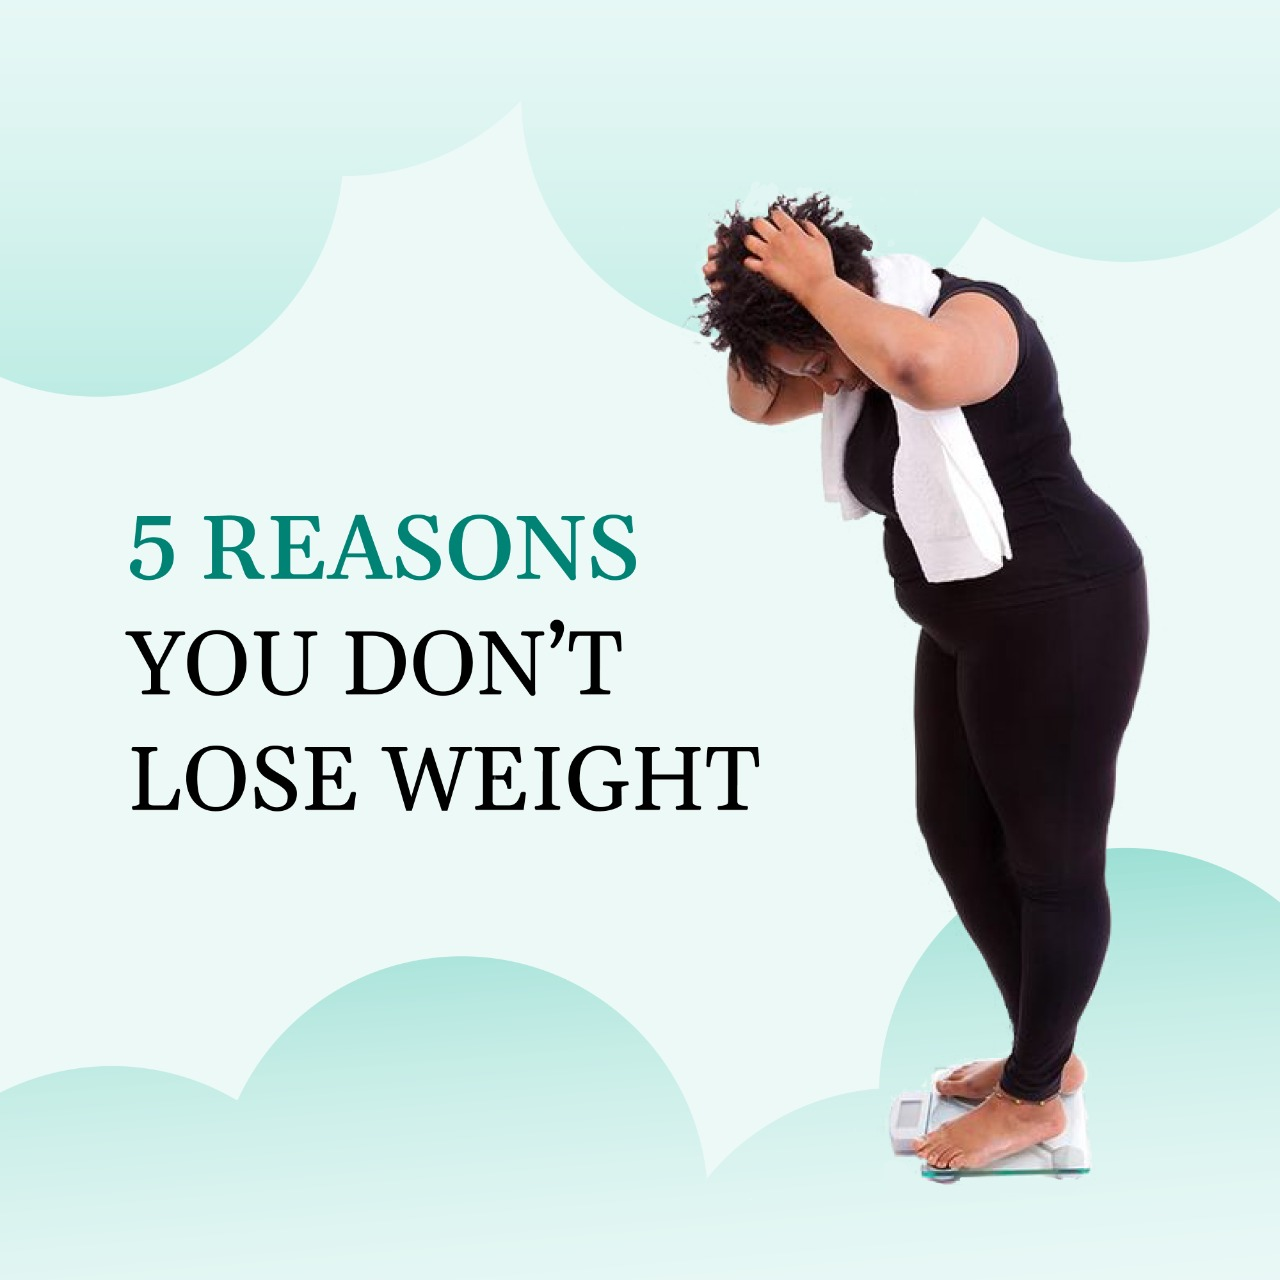 5 reasons why you do not lose weight